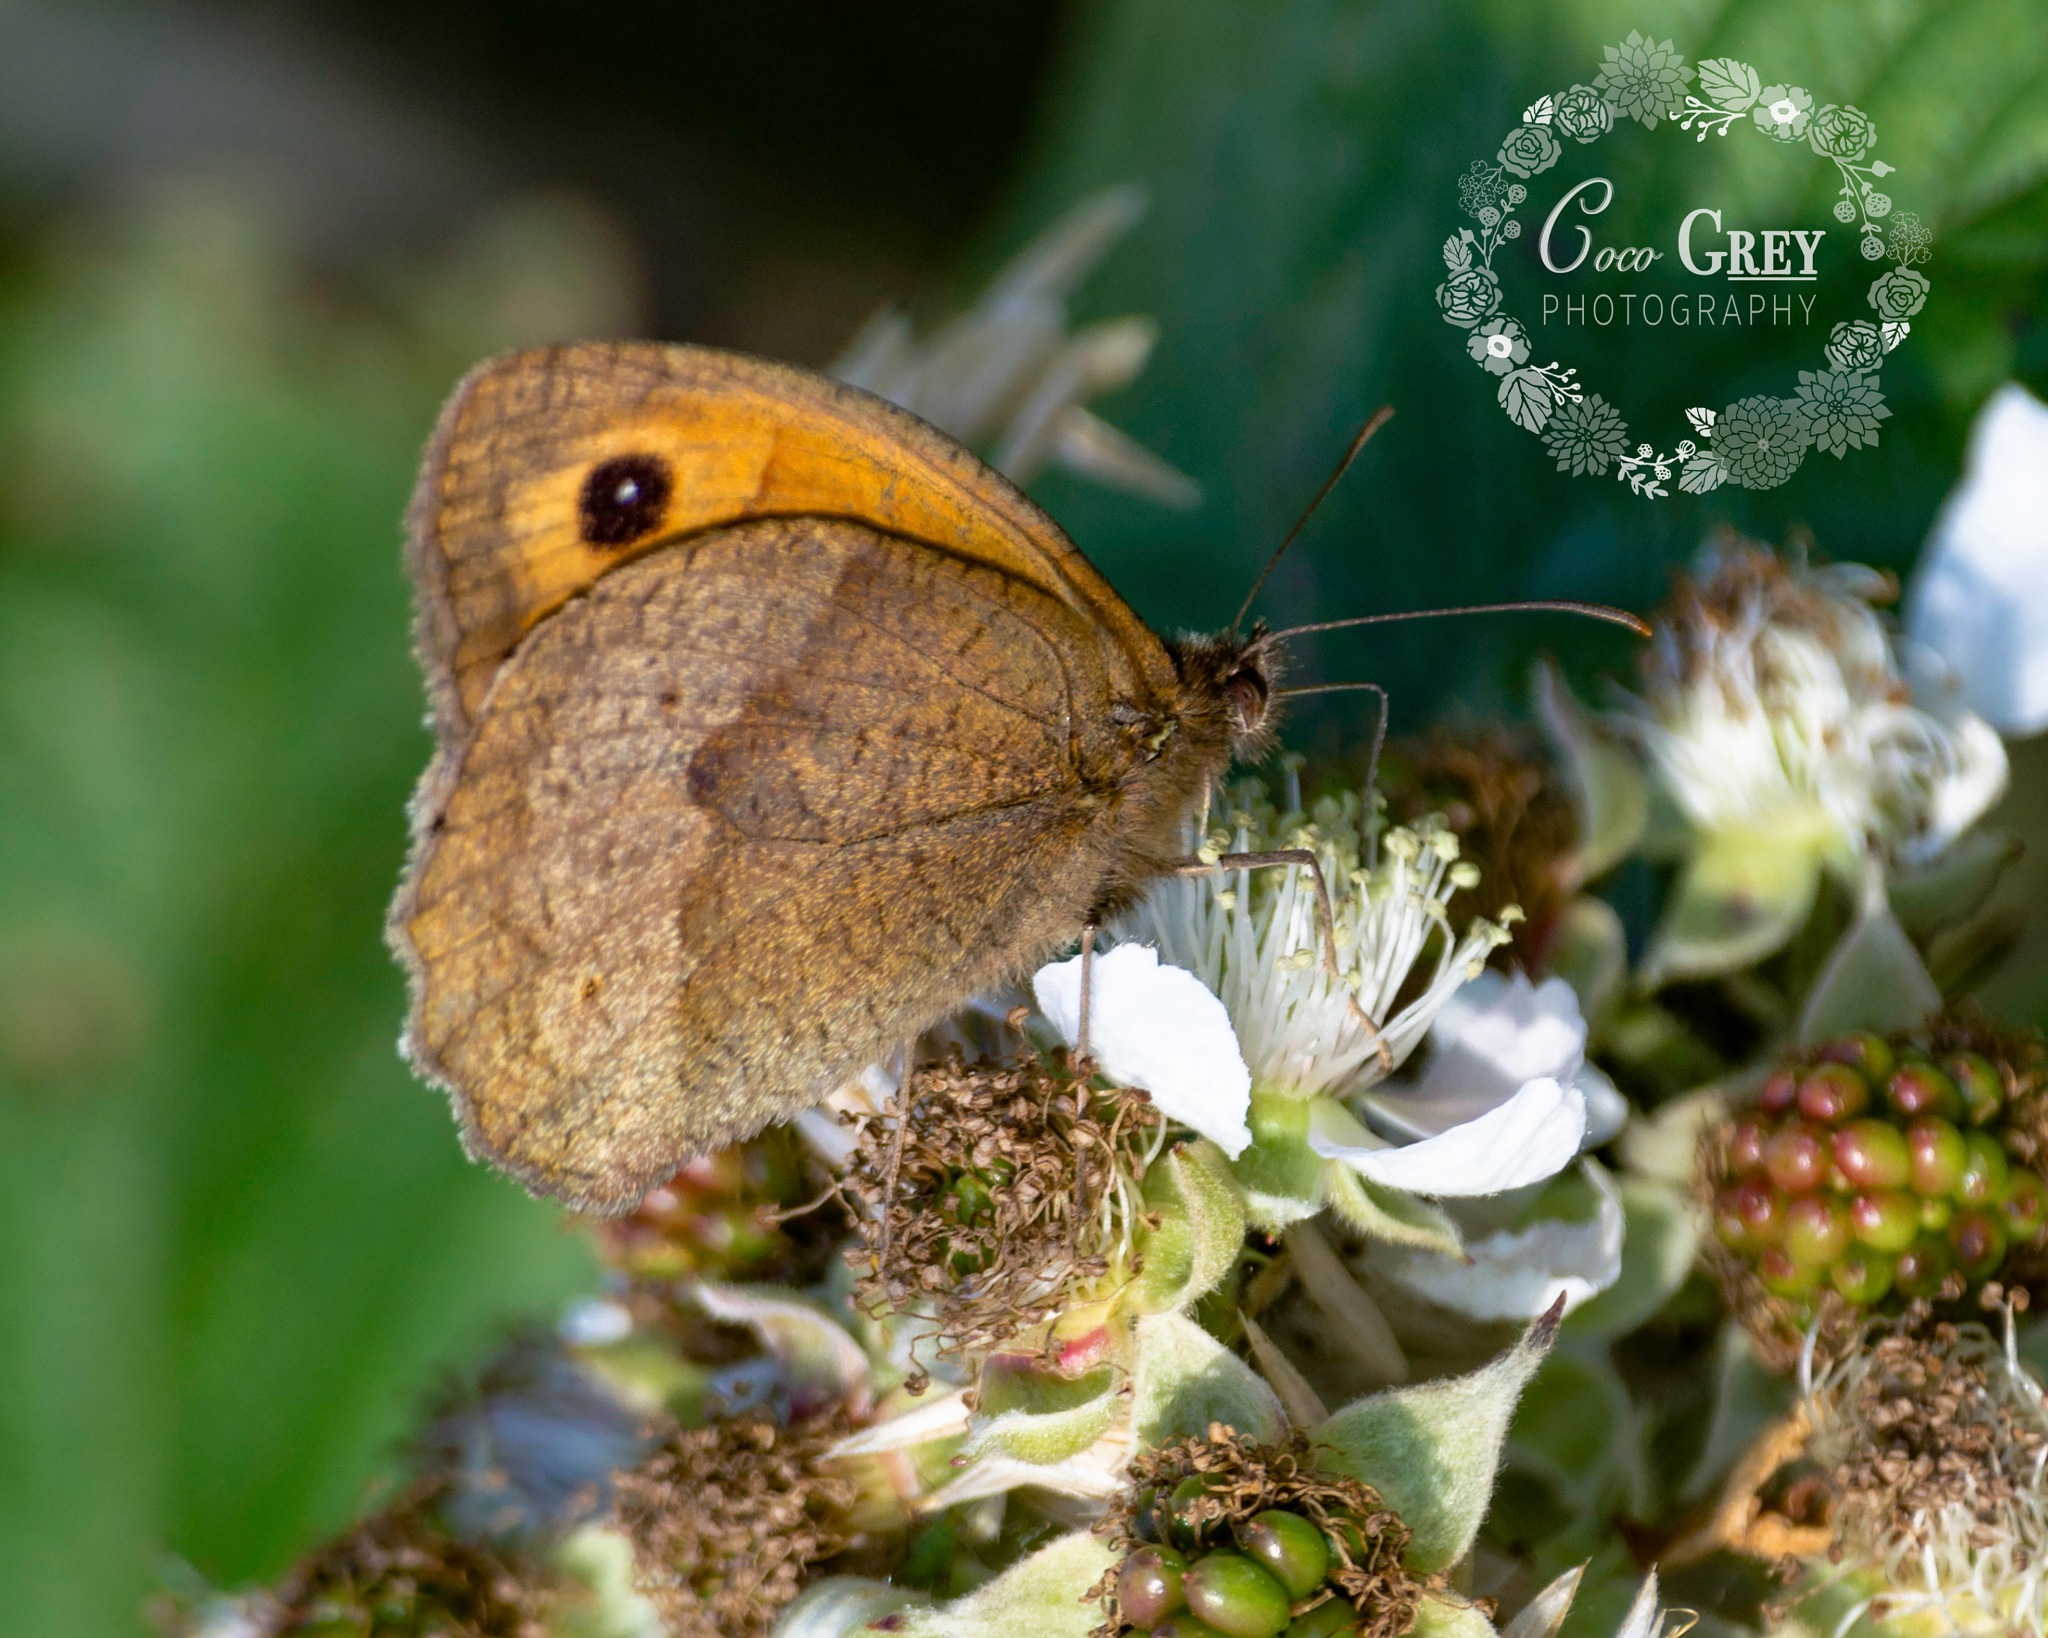 Butterfly by Coco Grey Photography